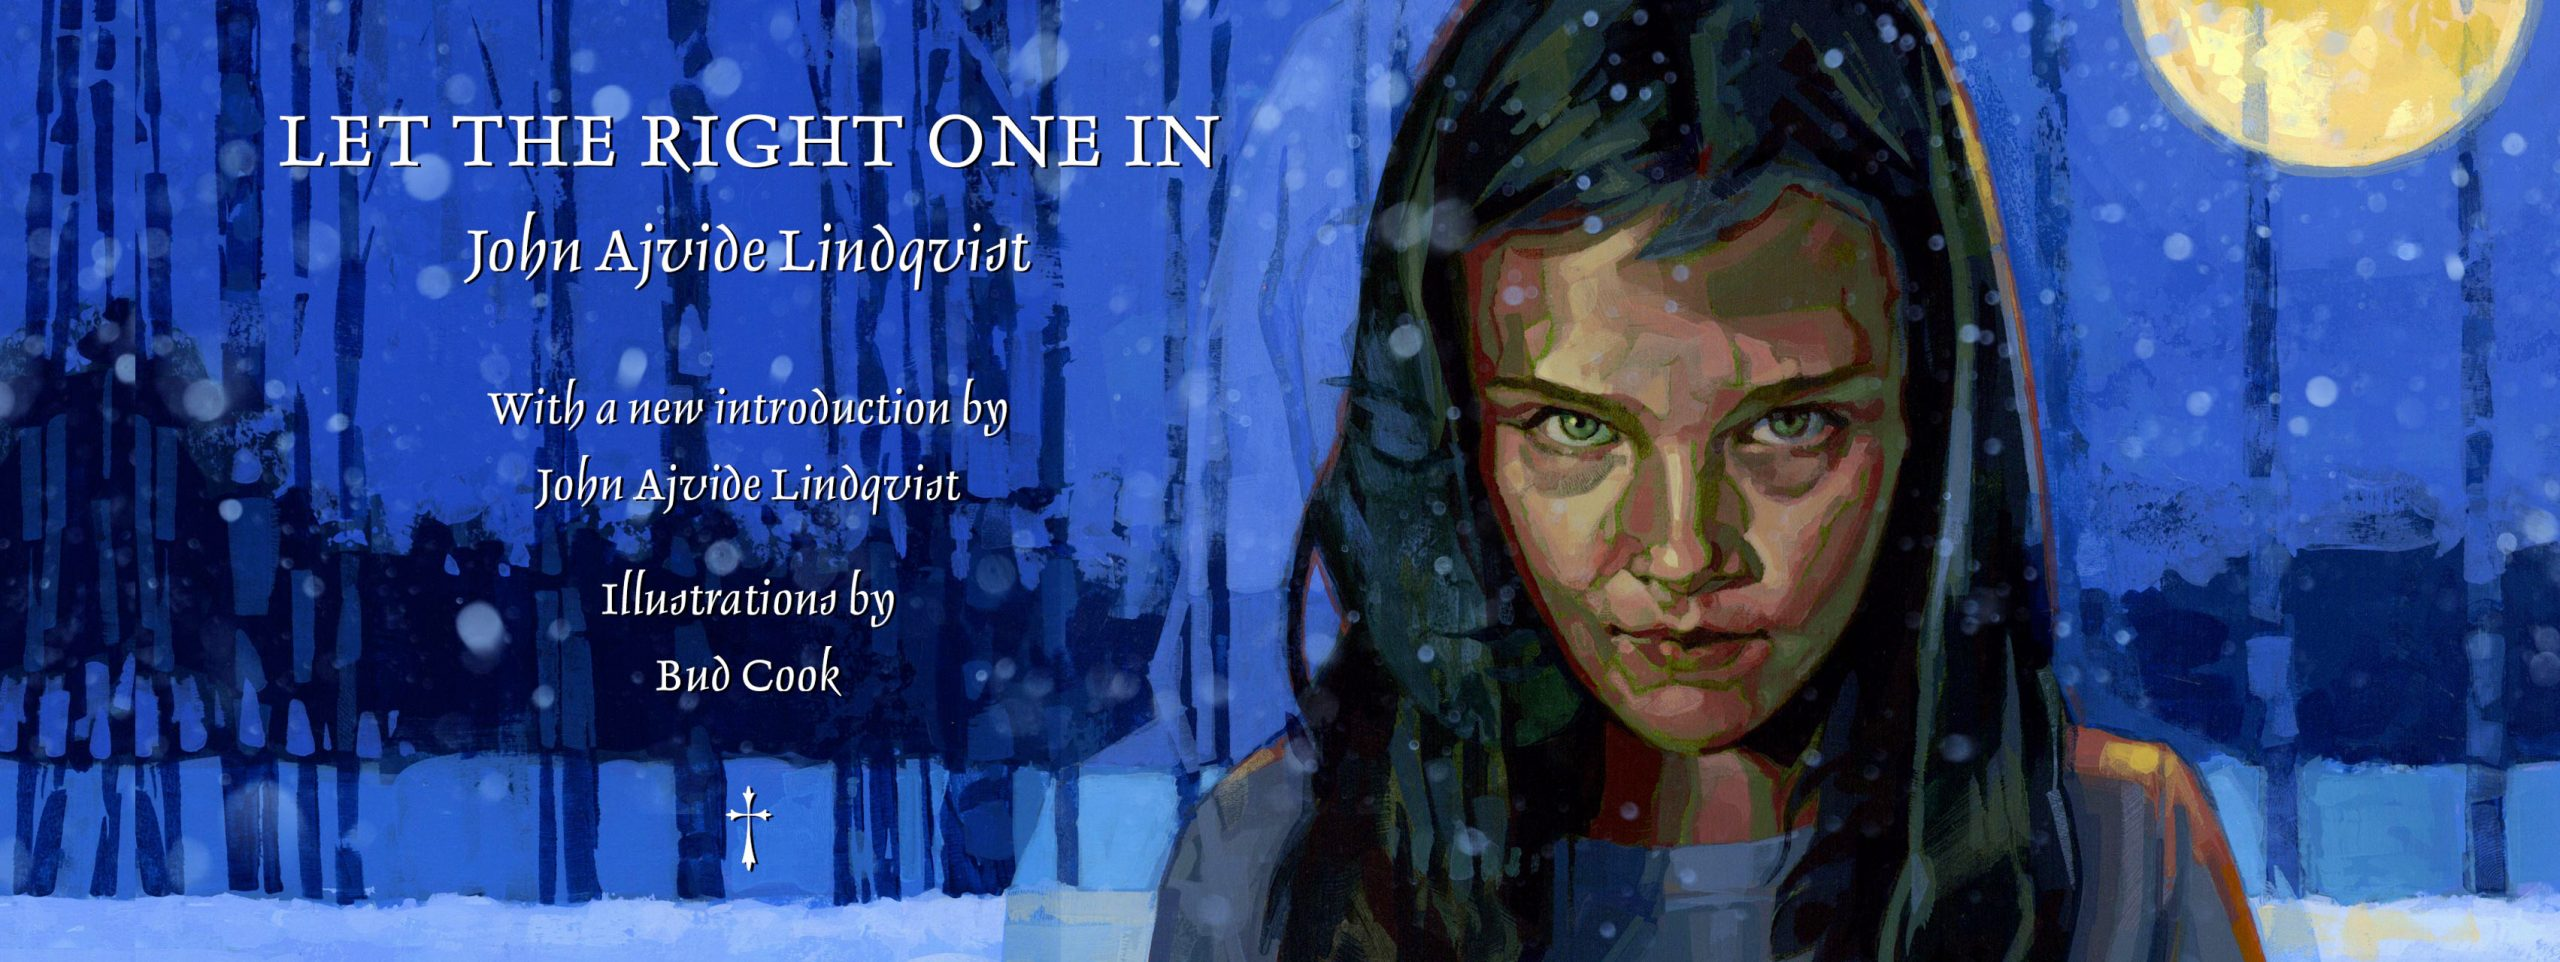 Let The Right One In - John Ajvide Lindqvist - Suntup Editions